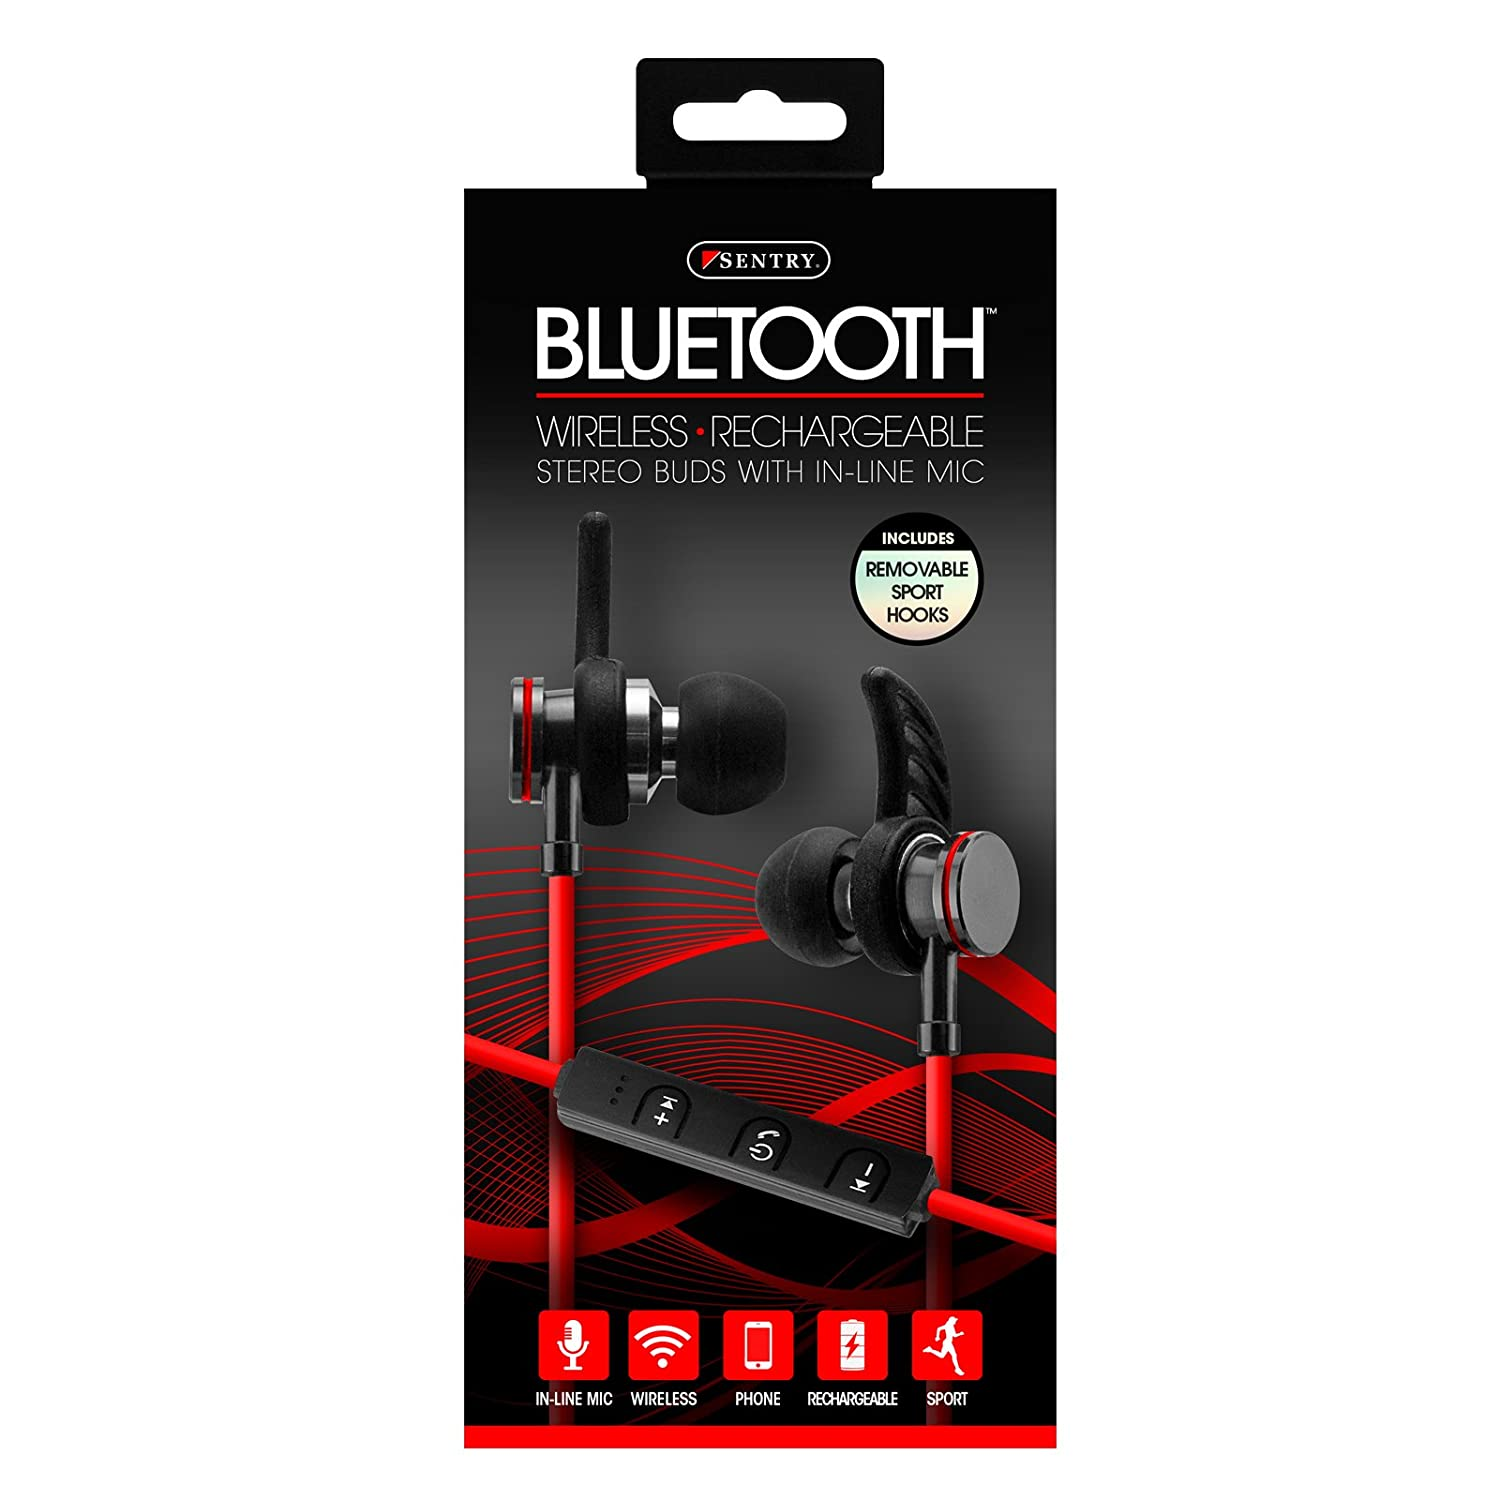 Bluetooth Wireless Rechargeable Stereo Buds With In Line Mic Wire Sony Xplod Cd Player Wiring Moreover Cdx Gt300 Also Str Amazon Com Earbuds Rh